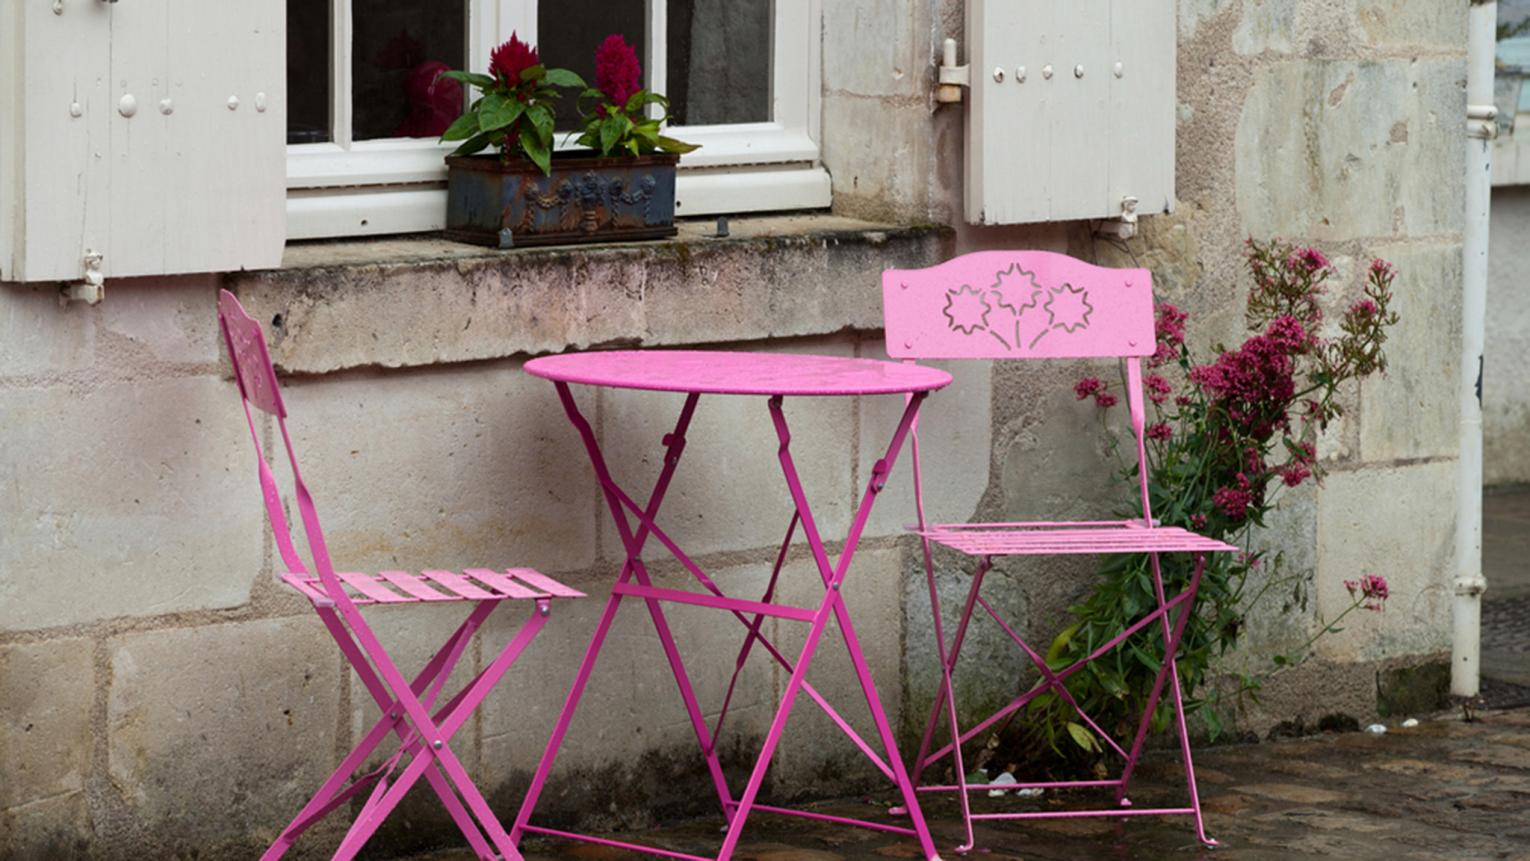 Want to update your outdoor area? Learn how to paint your metal garden chairs in vibrant colours for an instant transformation.